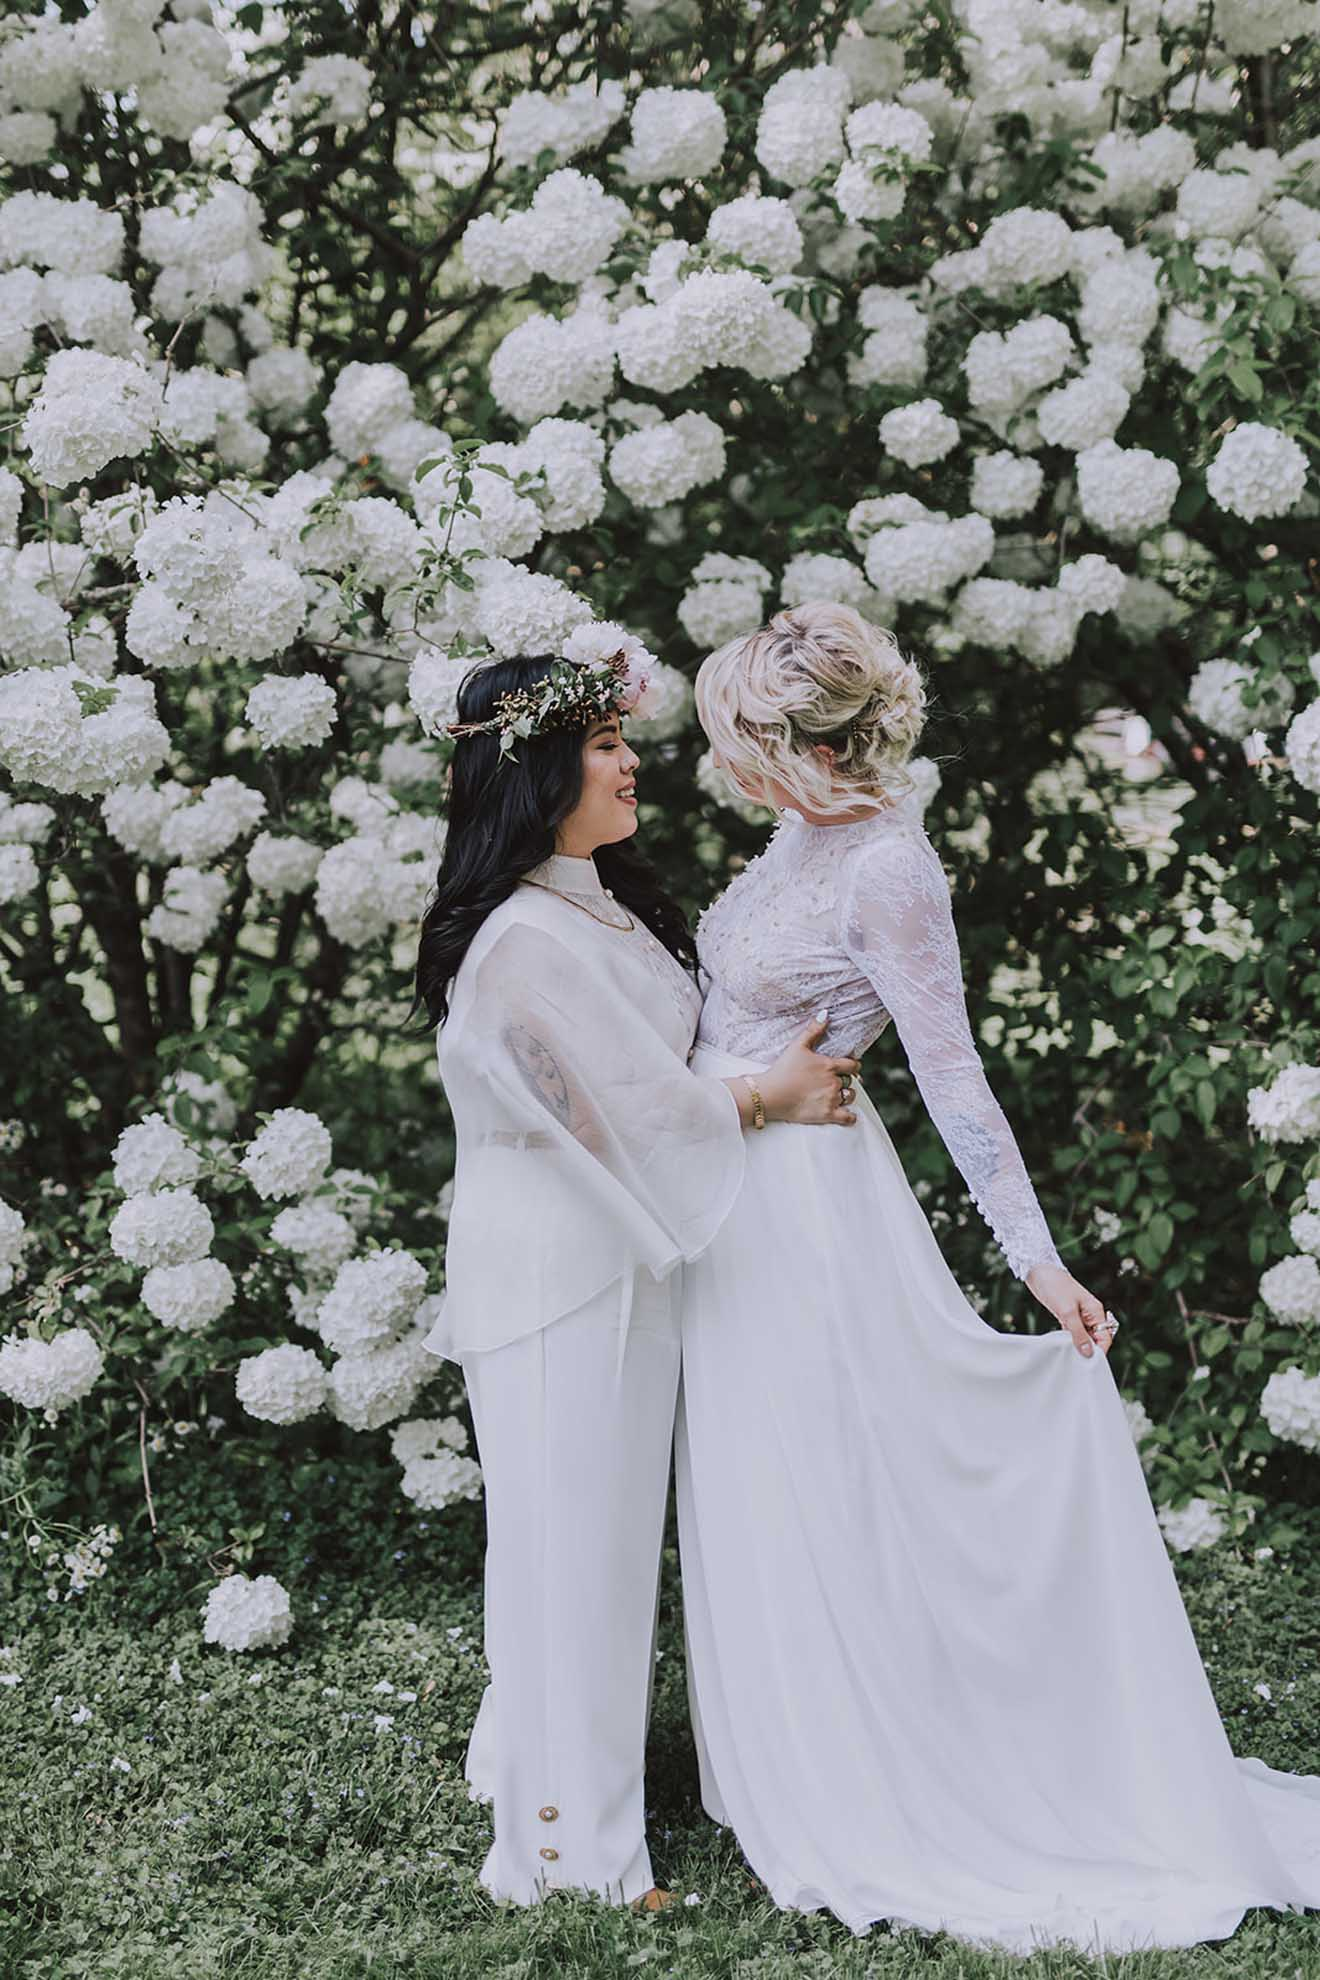 Mary Bell Photography lesbian gay same-sex couple multi-cultural religious Filipino Asian American wedding Dancing With Her magazine